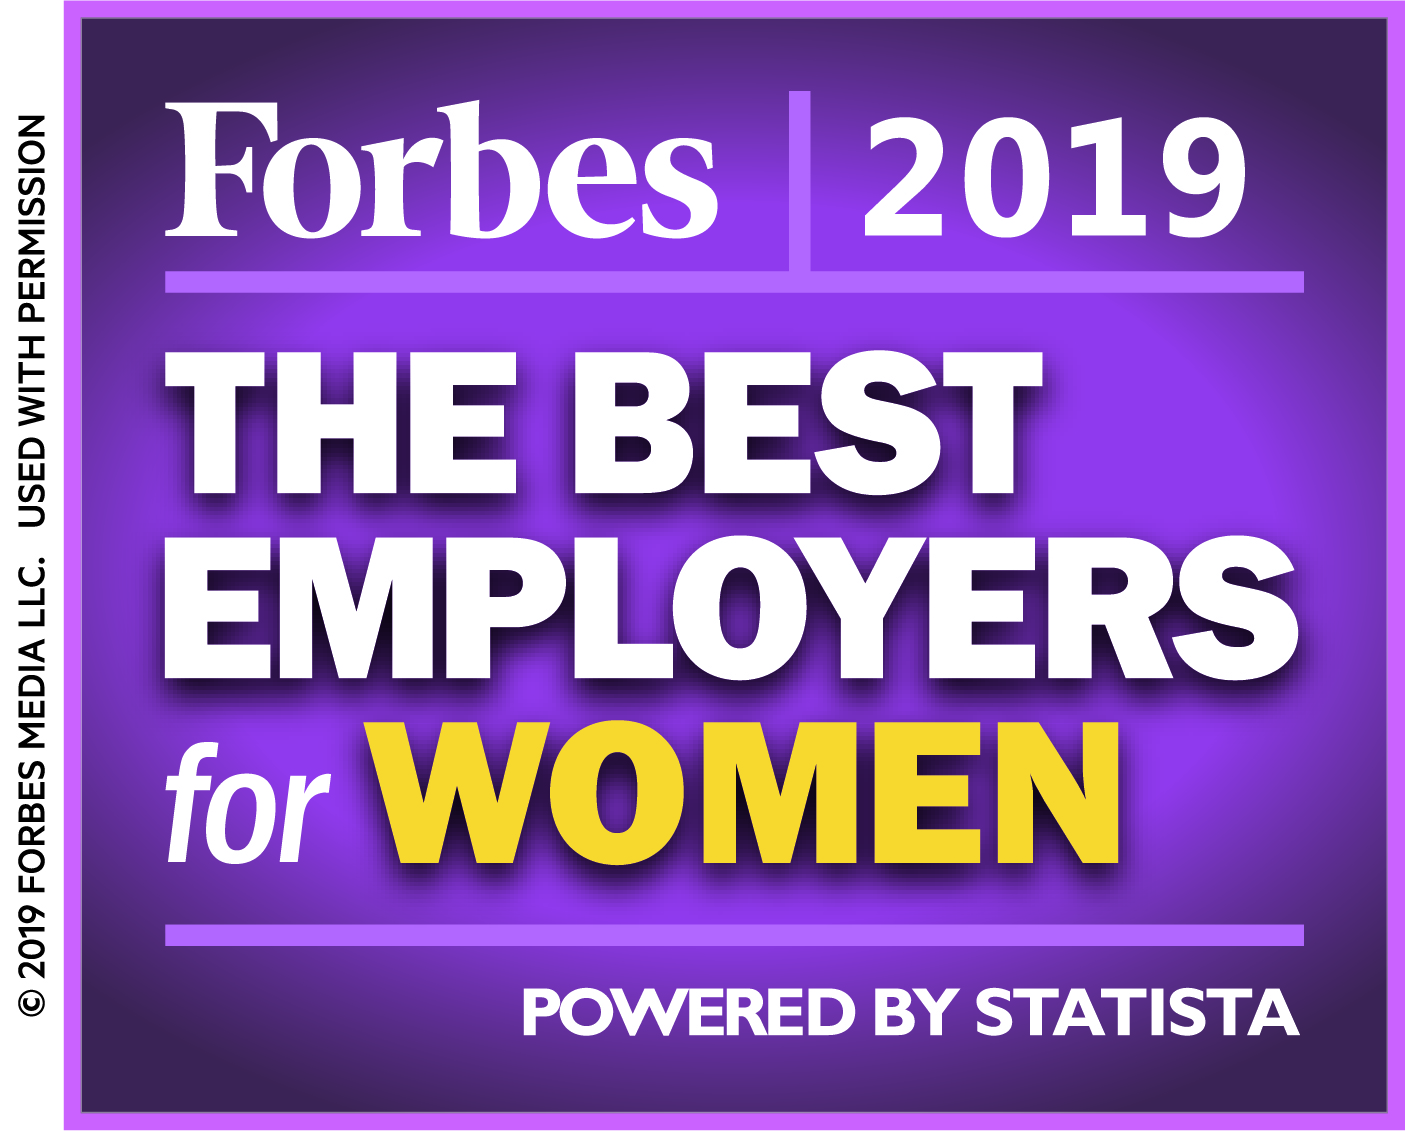 2019 Forbes Best Employers for Women